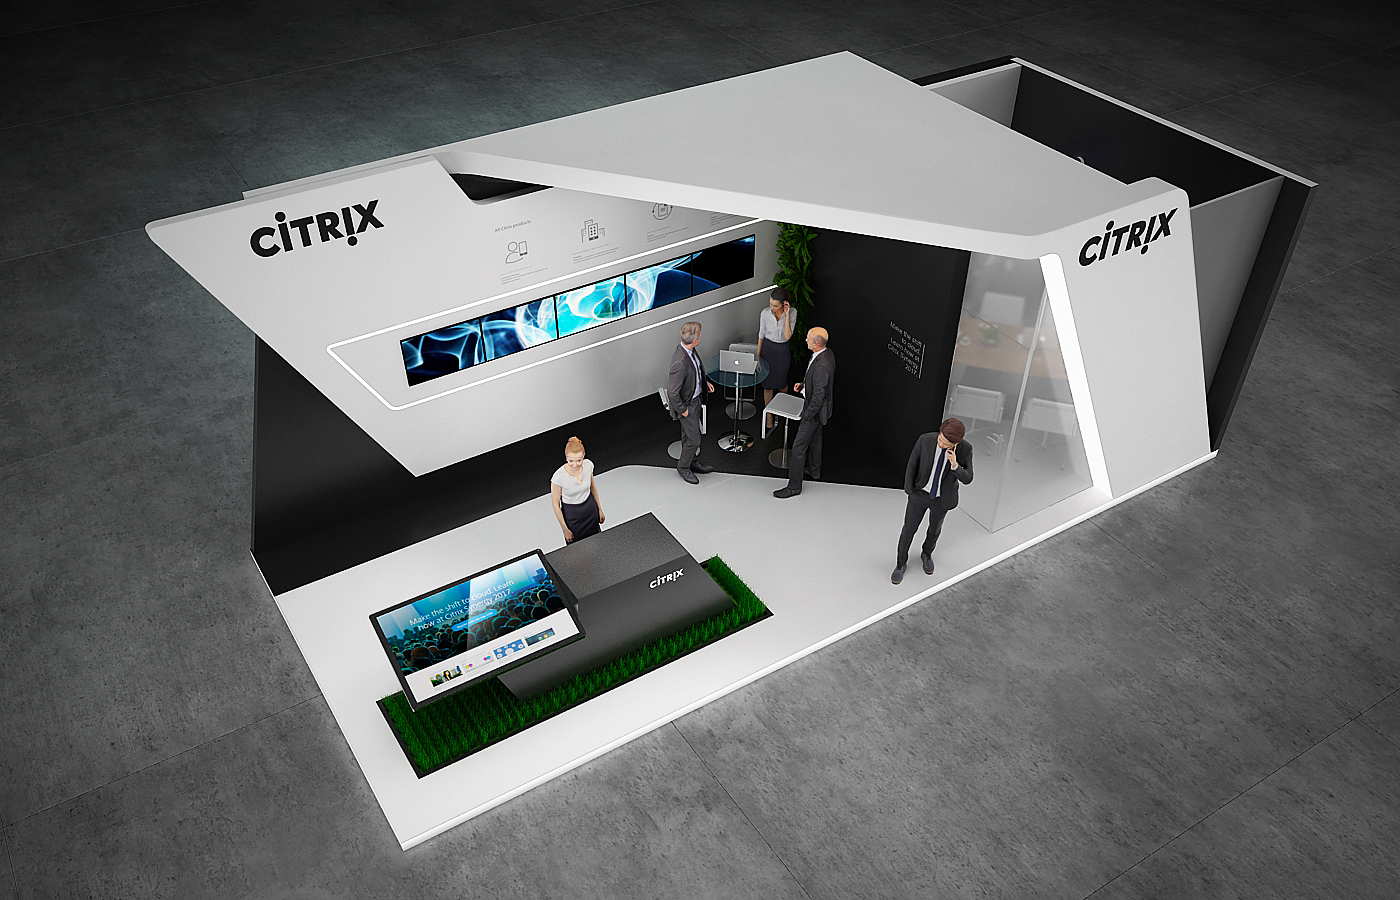 exhibitioon stand stand design gm stand design it stand IT exhibition technology Citrix gm design group booth high-tech exhibition stand